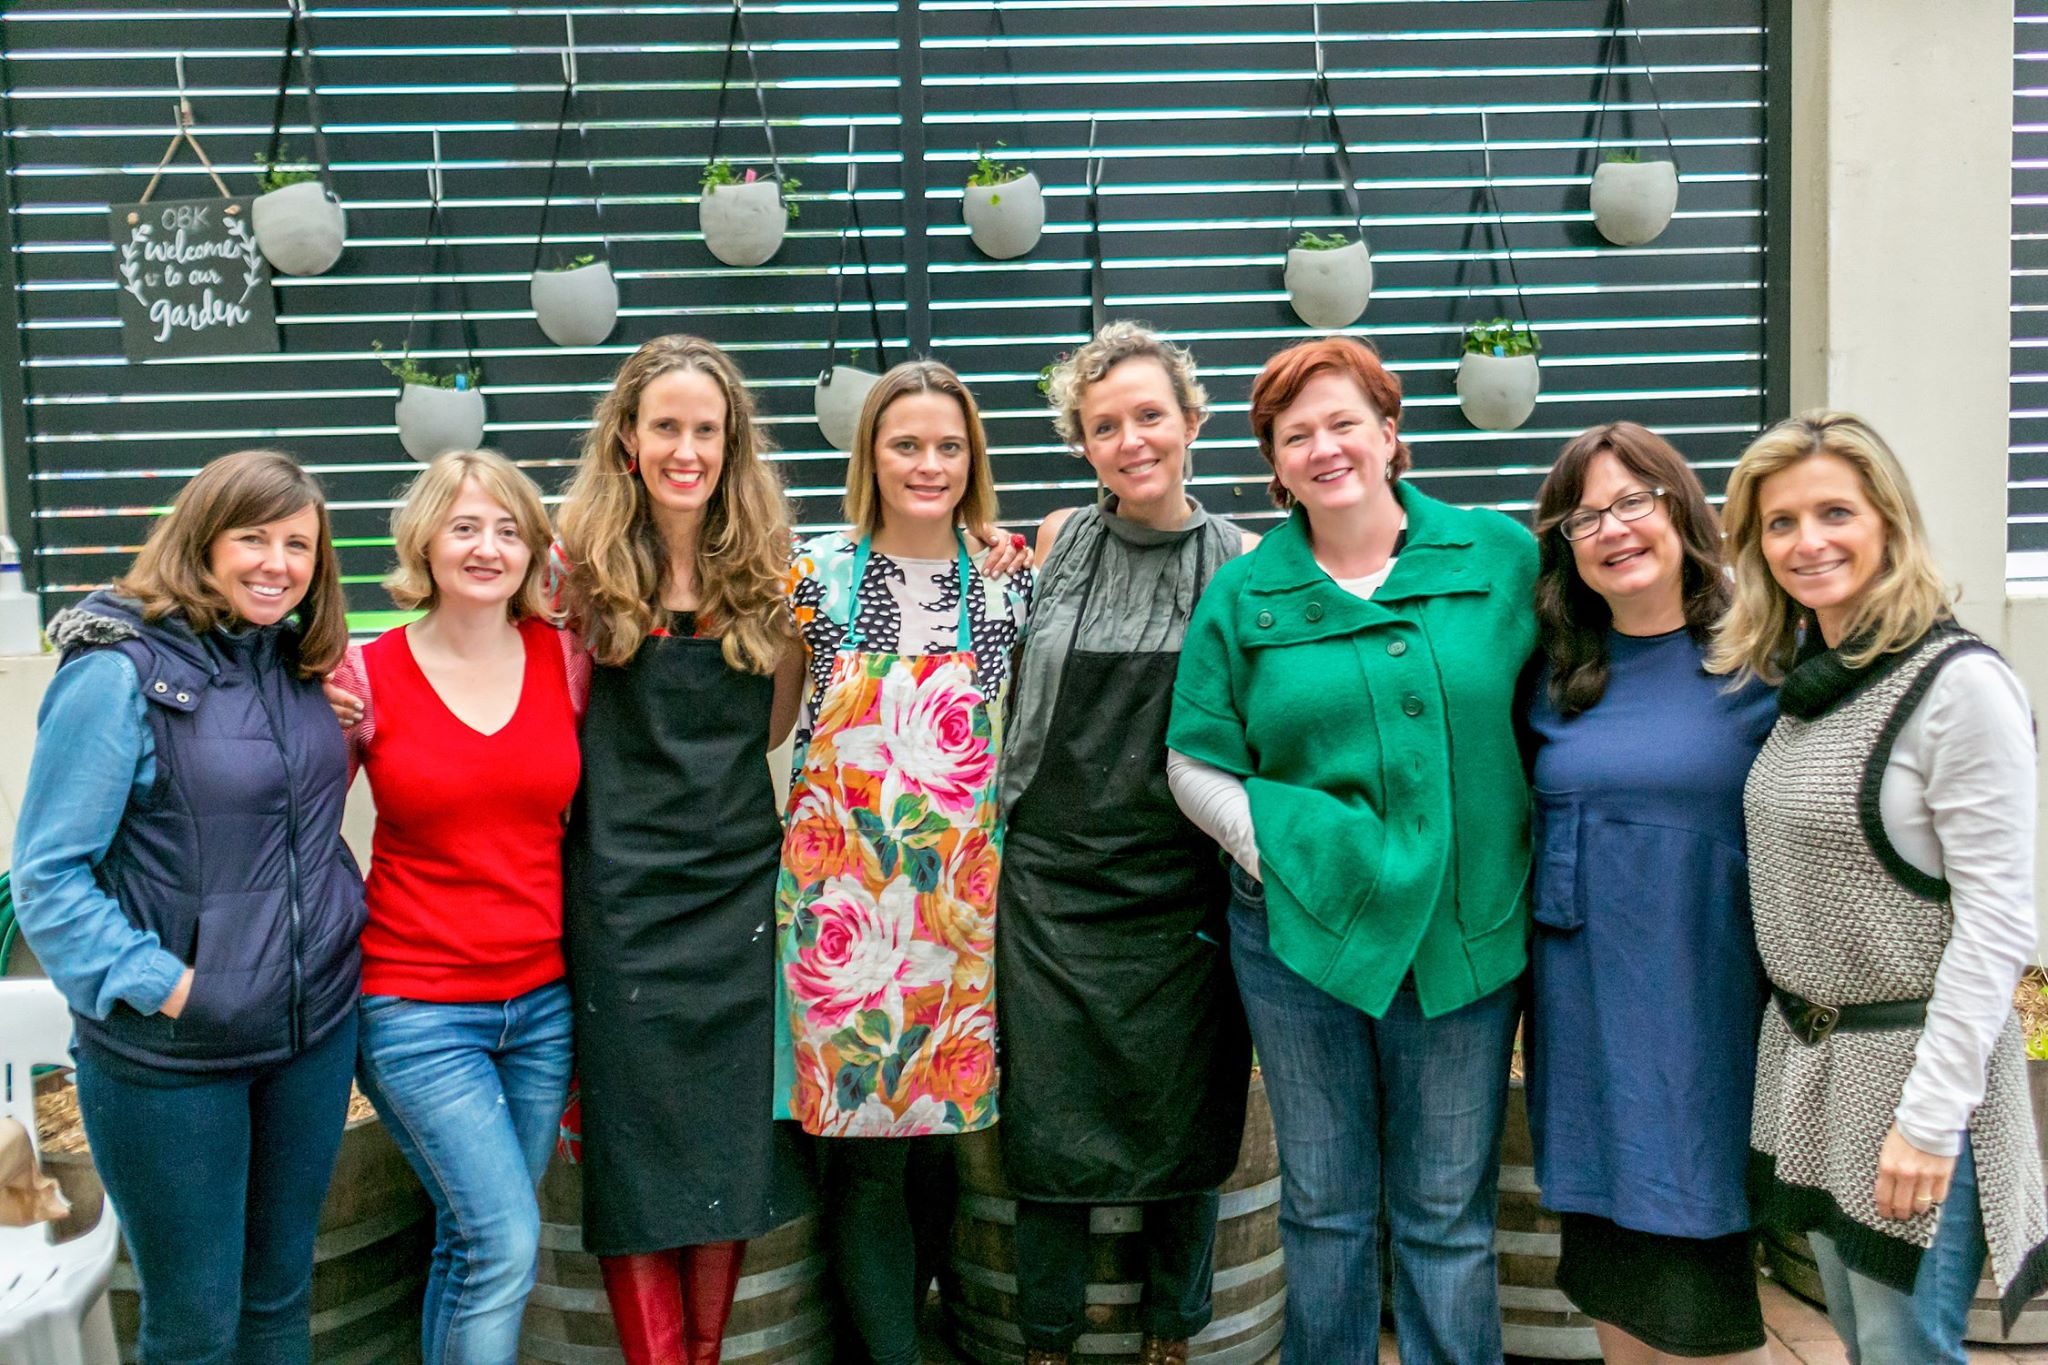 A massive thank you from Mama Creatives, Our Big Kitchen and Mary's House - to all the generous volunteers who helped make our first Creative Family Volunteer Day such a success!